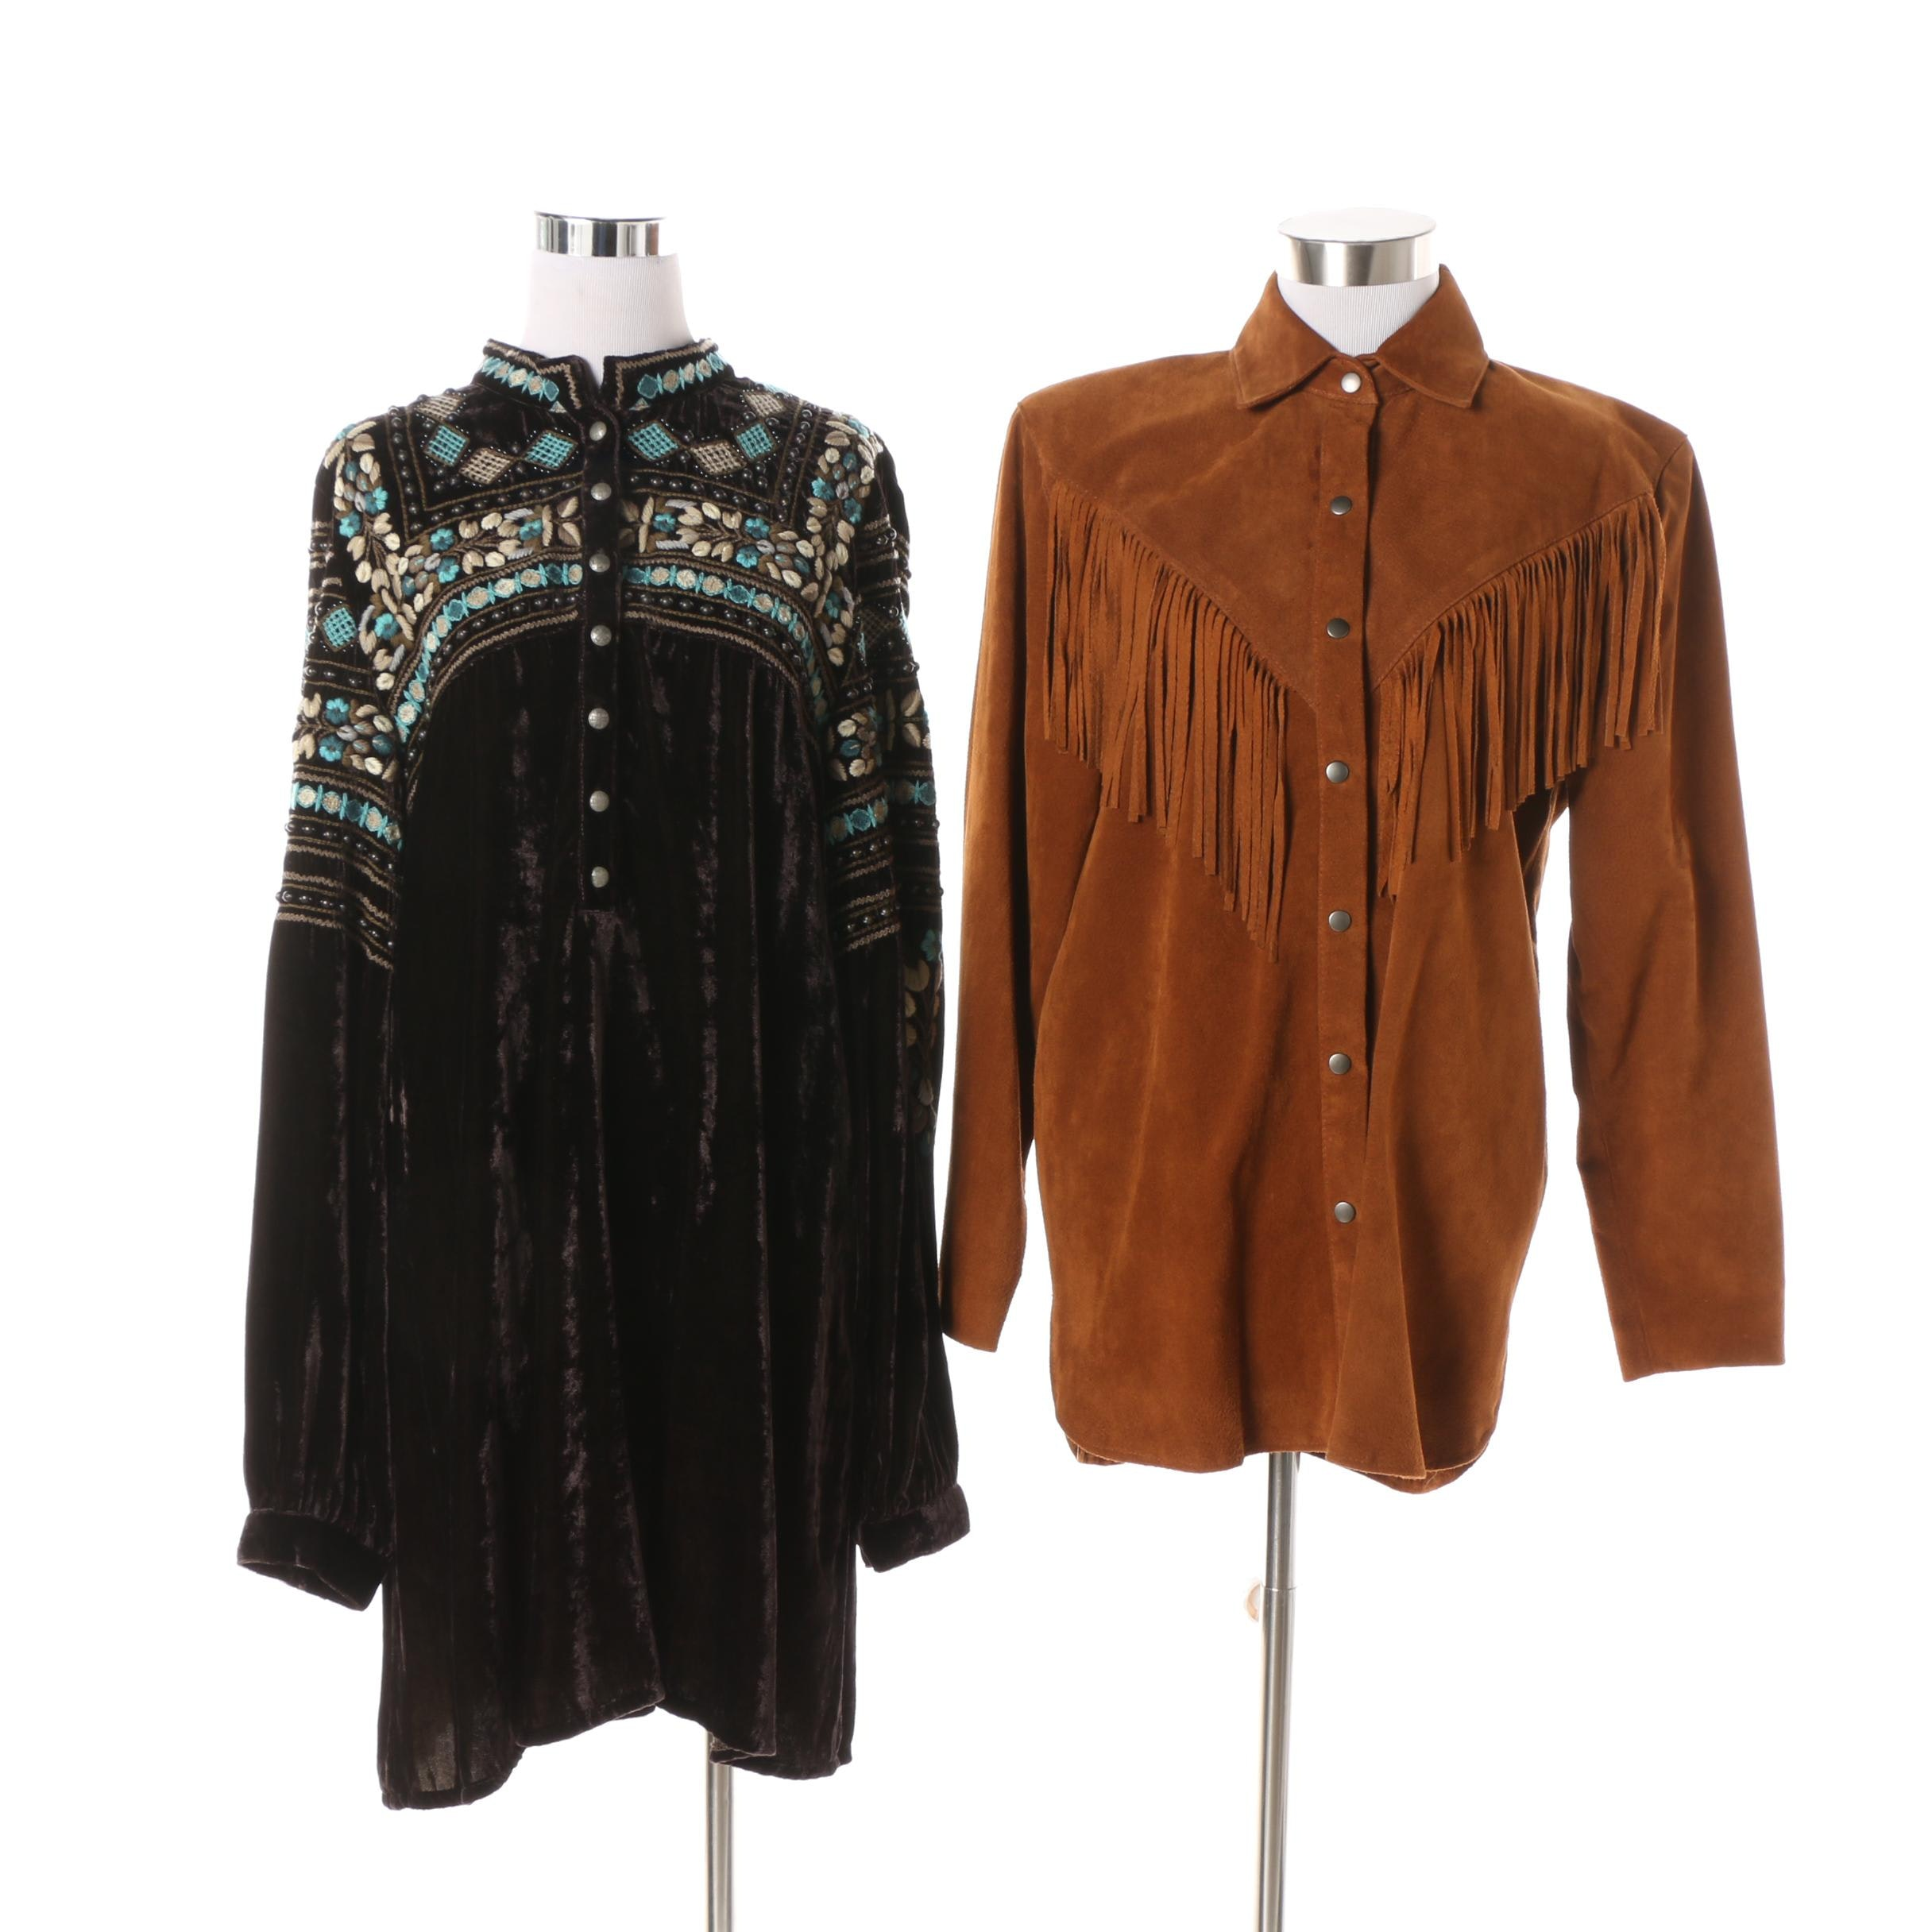 Kenar Leathers Fringed Suede Jacket and Double D Ranch Embroidered Tunic/Dress